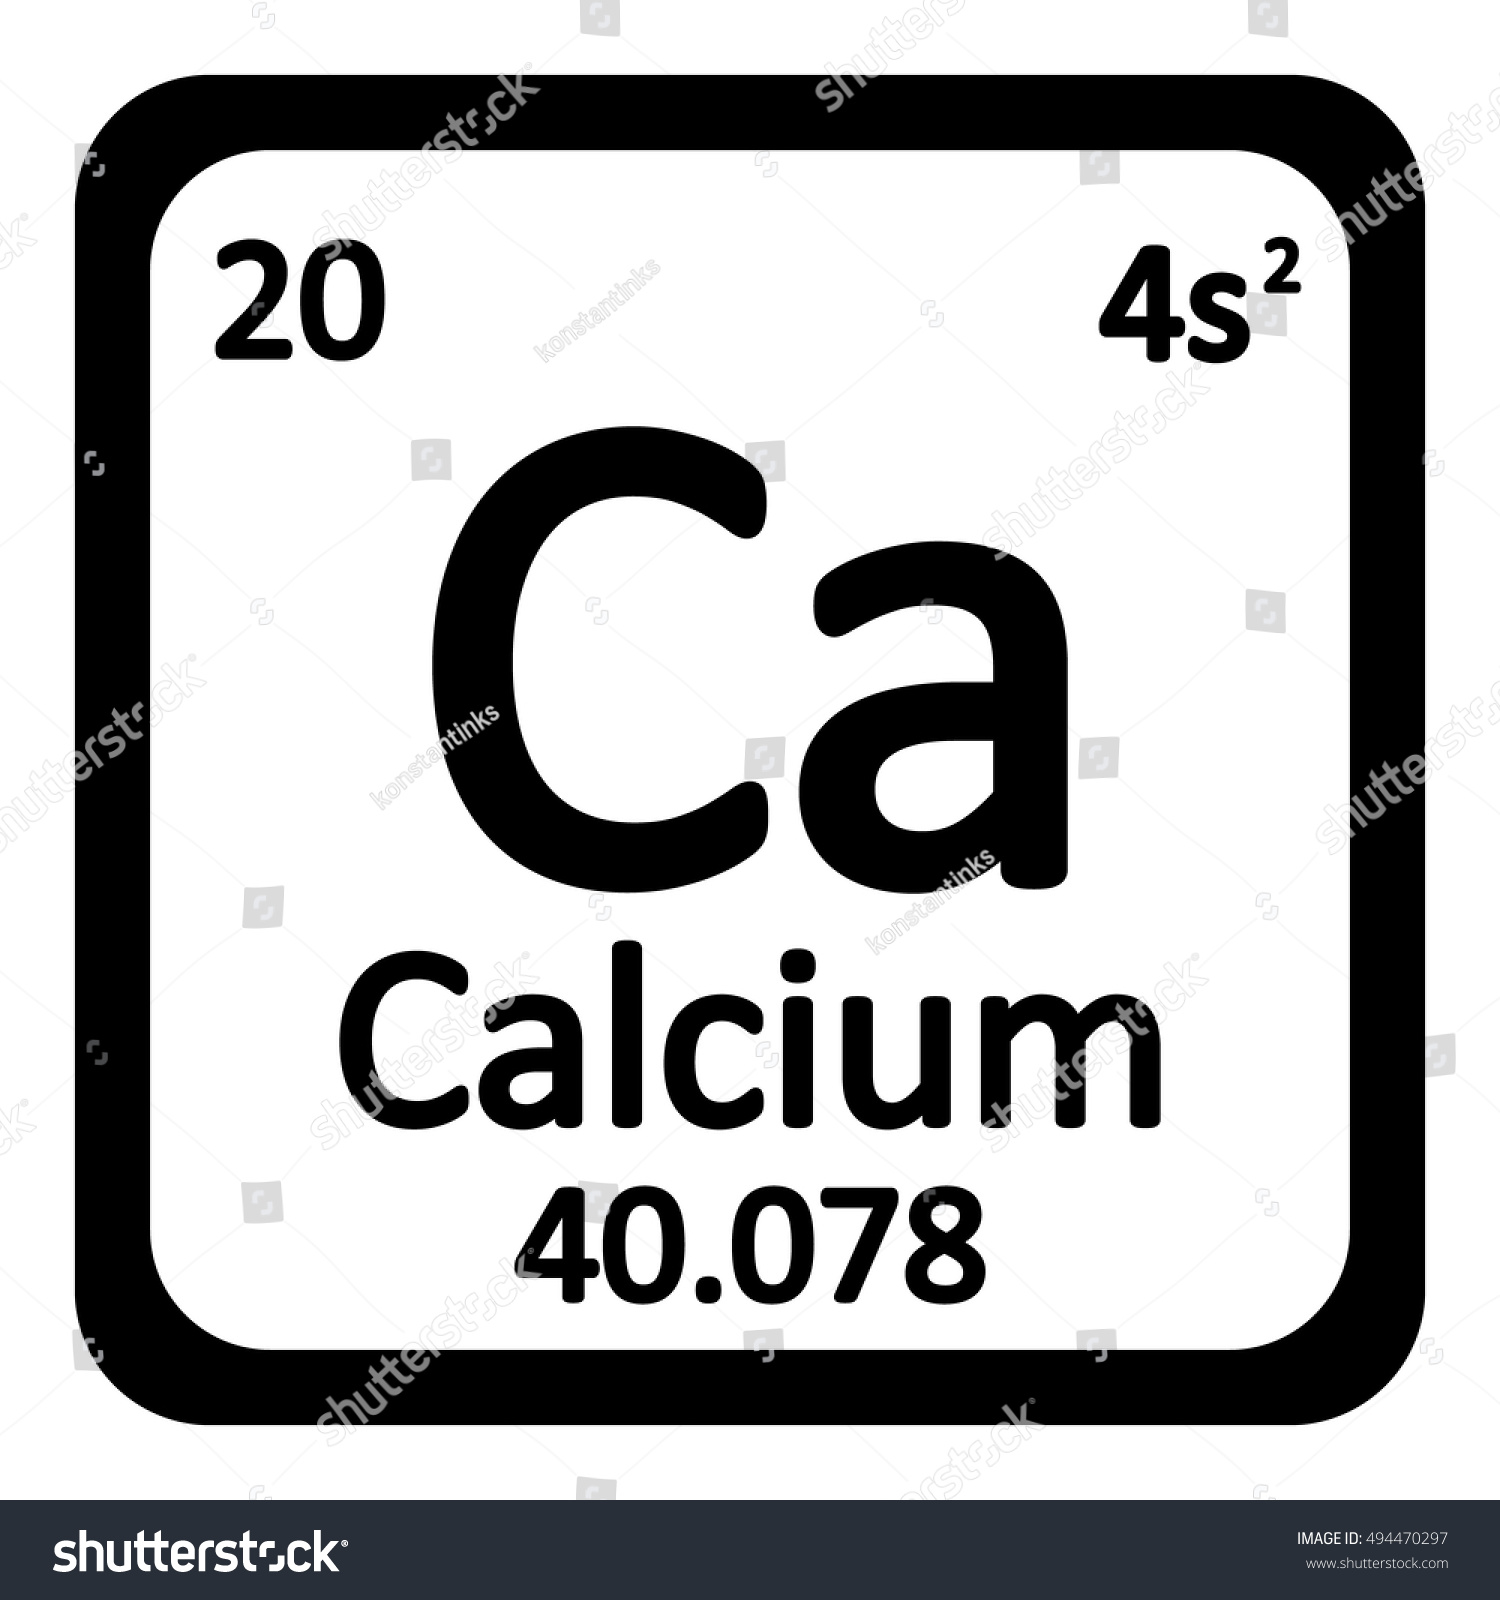 Periodic table element calcium icon on stock vector 494470297 periodic table element calcium icon on white background vector illustration gamestrikefo Choice Image